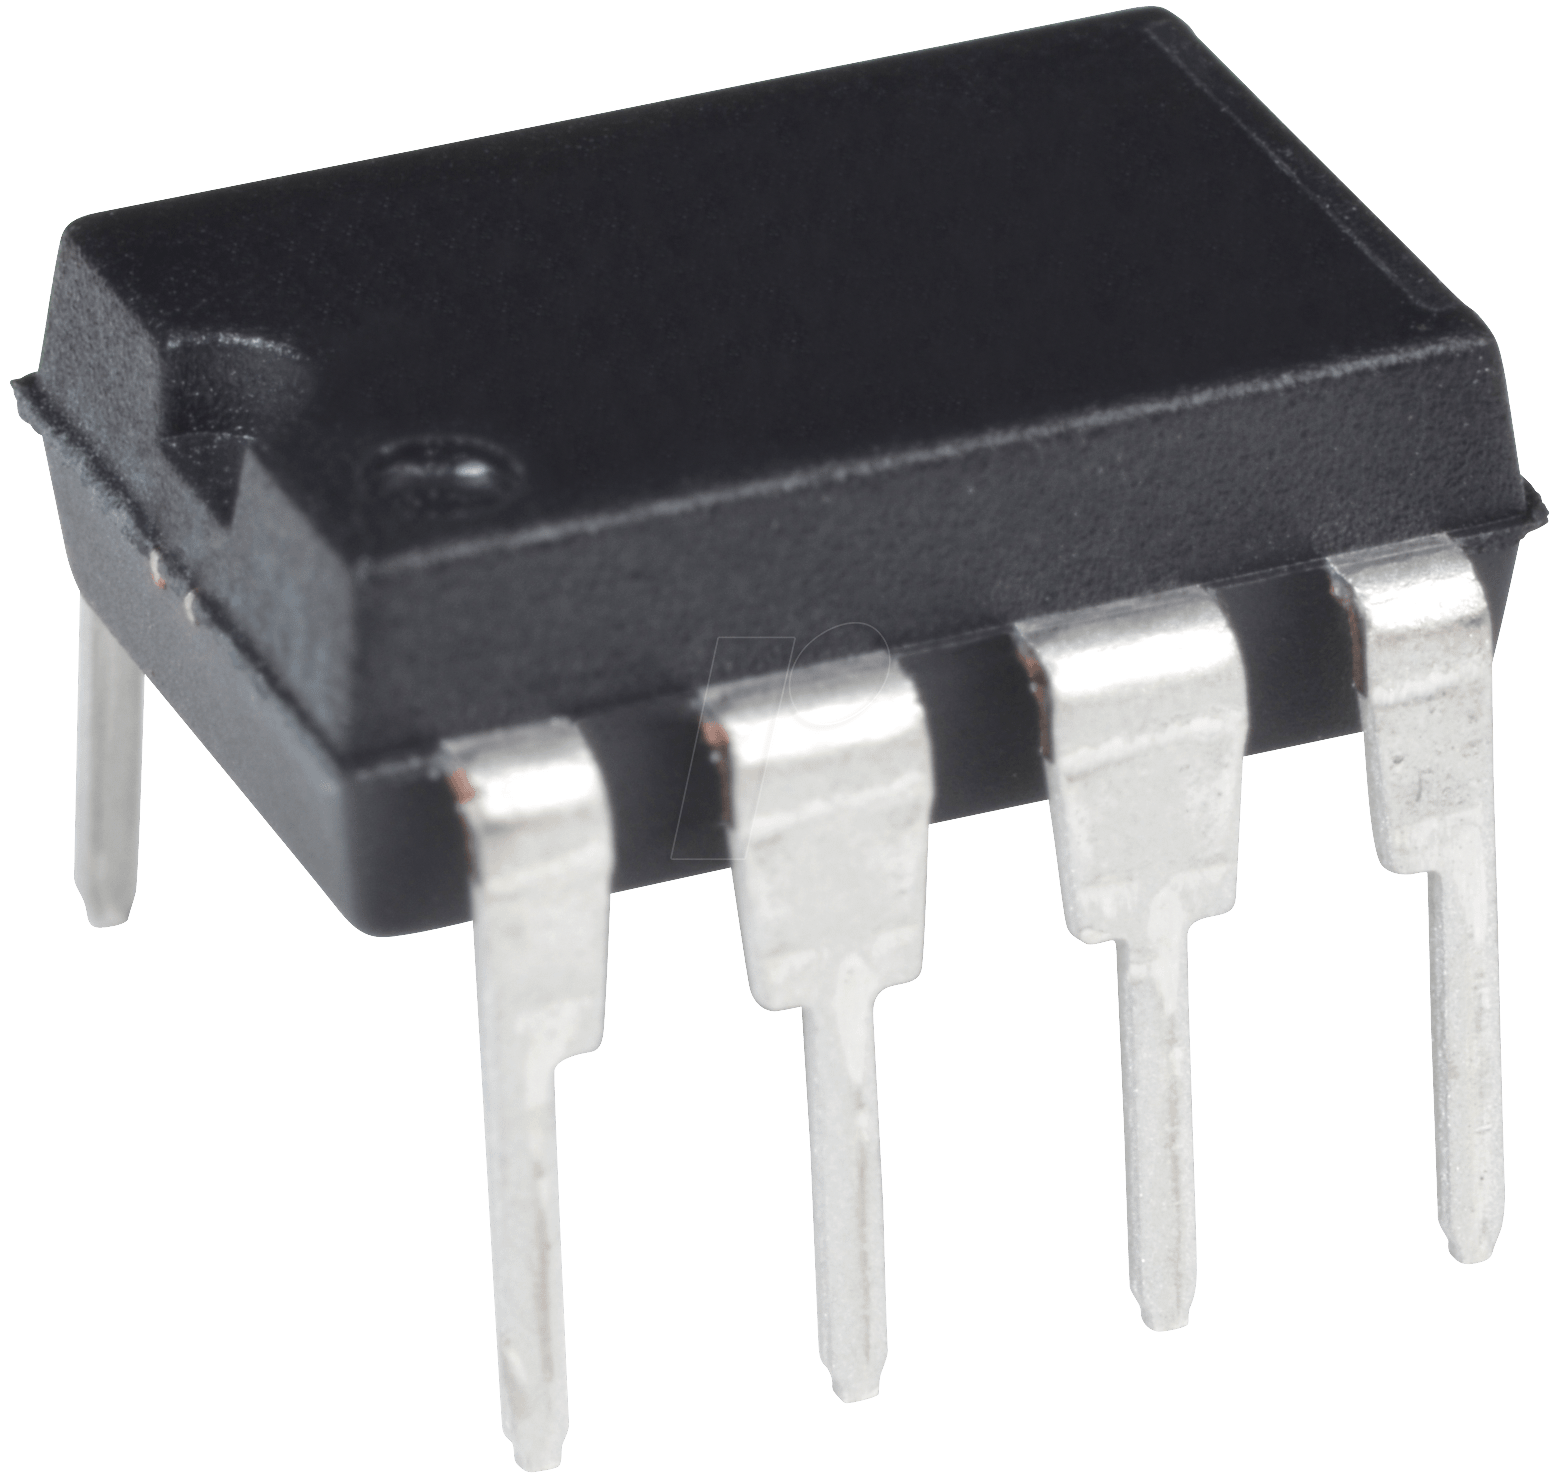 LM 311 P - Komperator, Single, DIL-8